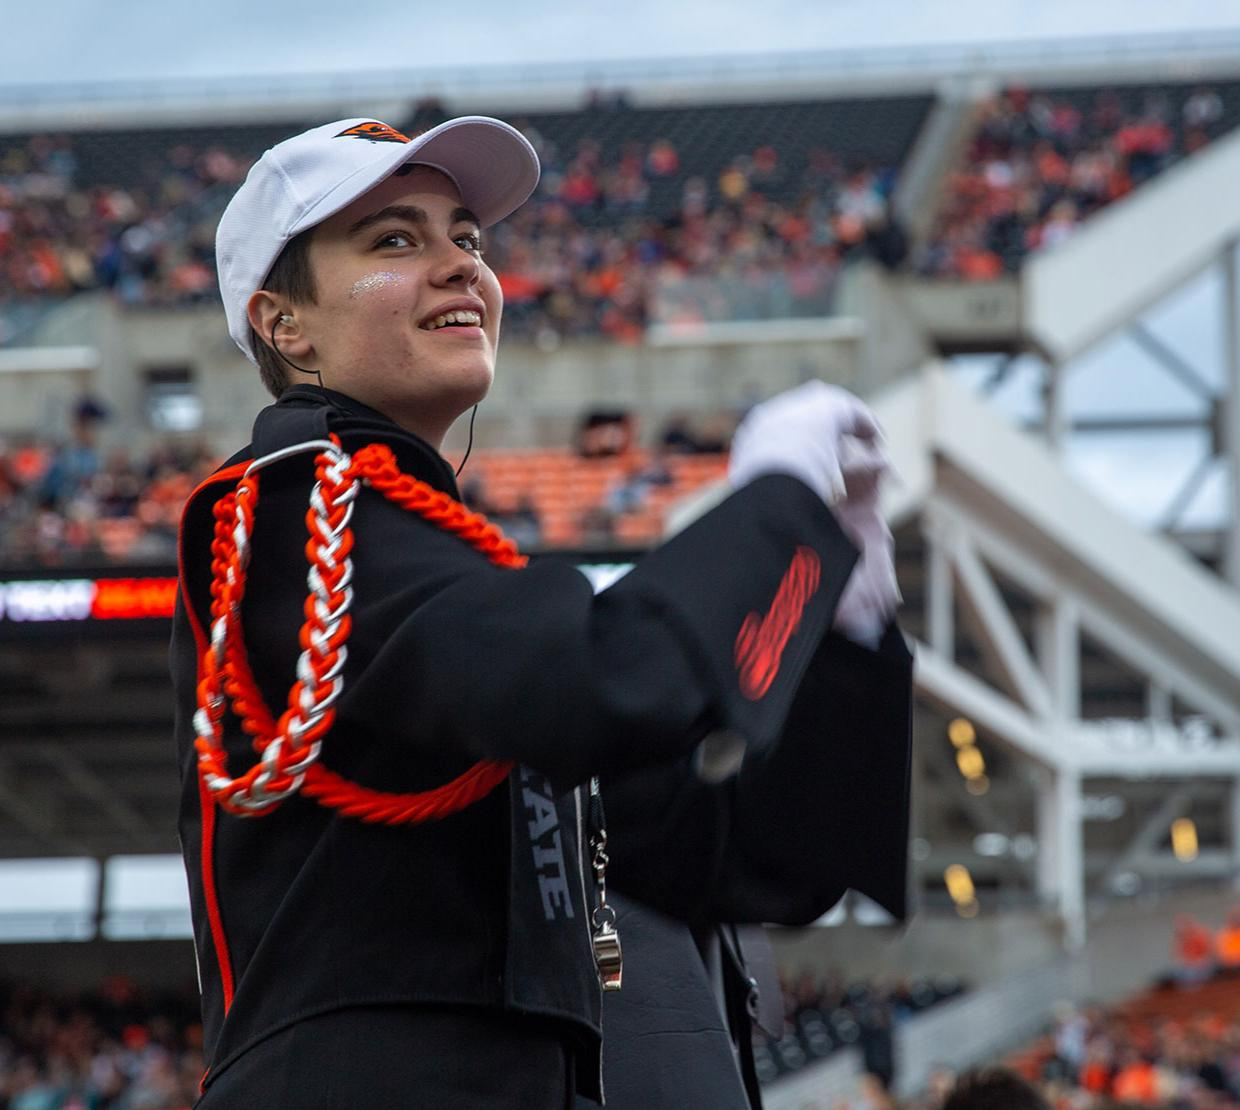 Linus Unitan is a drum major and sousaphone player in Oregon State's marching band.